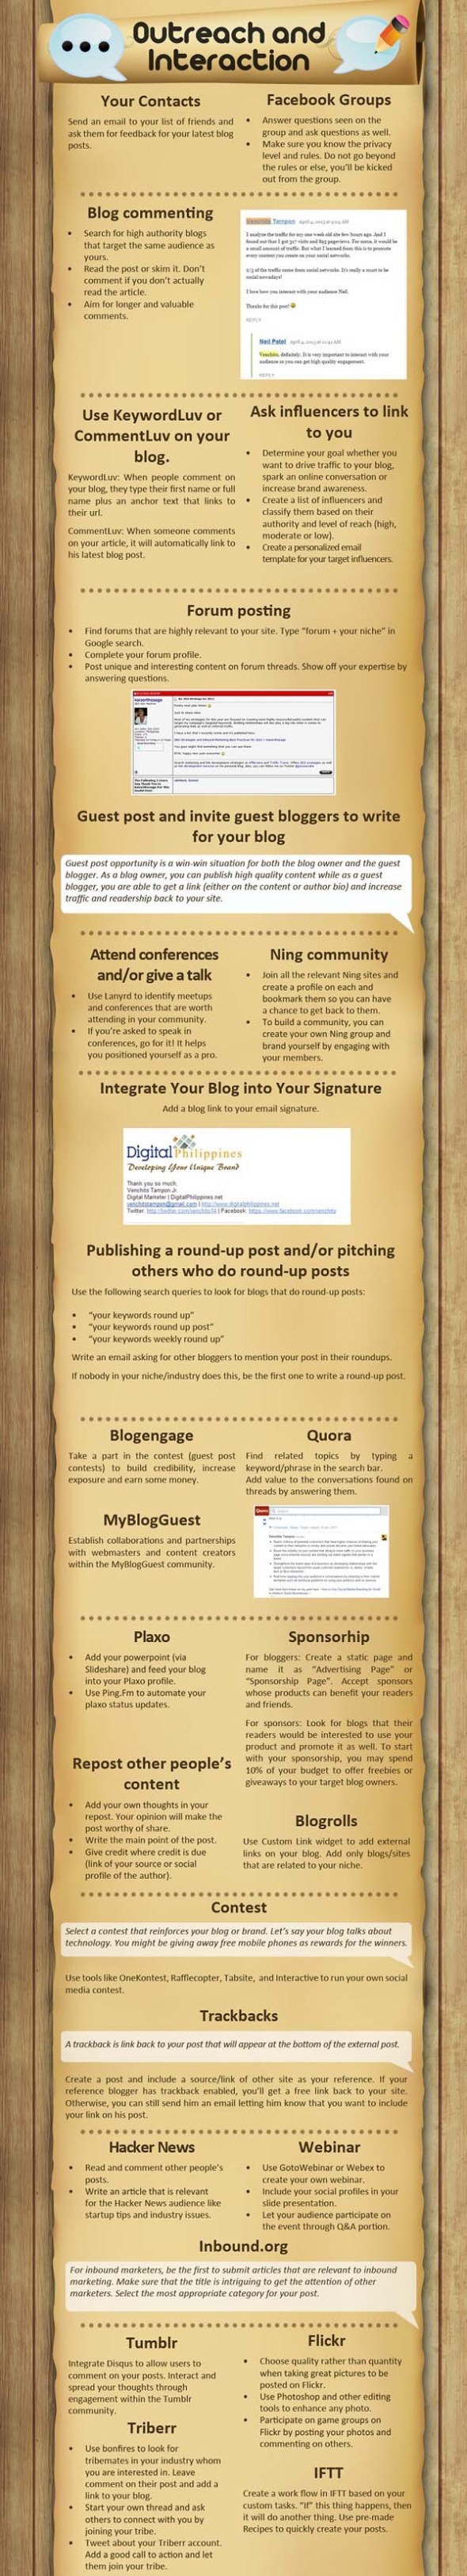 Blog Marketing - Outreach and Interaction